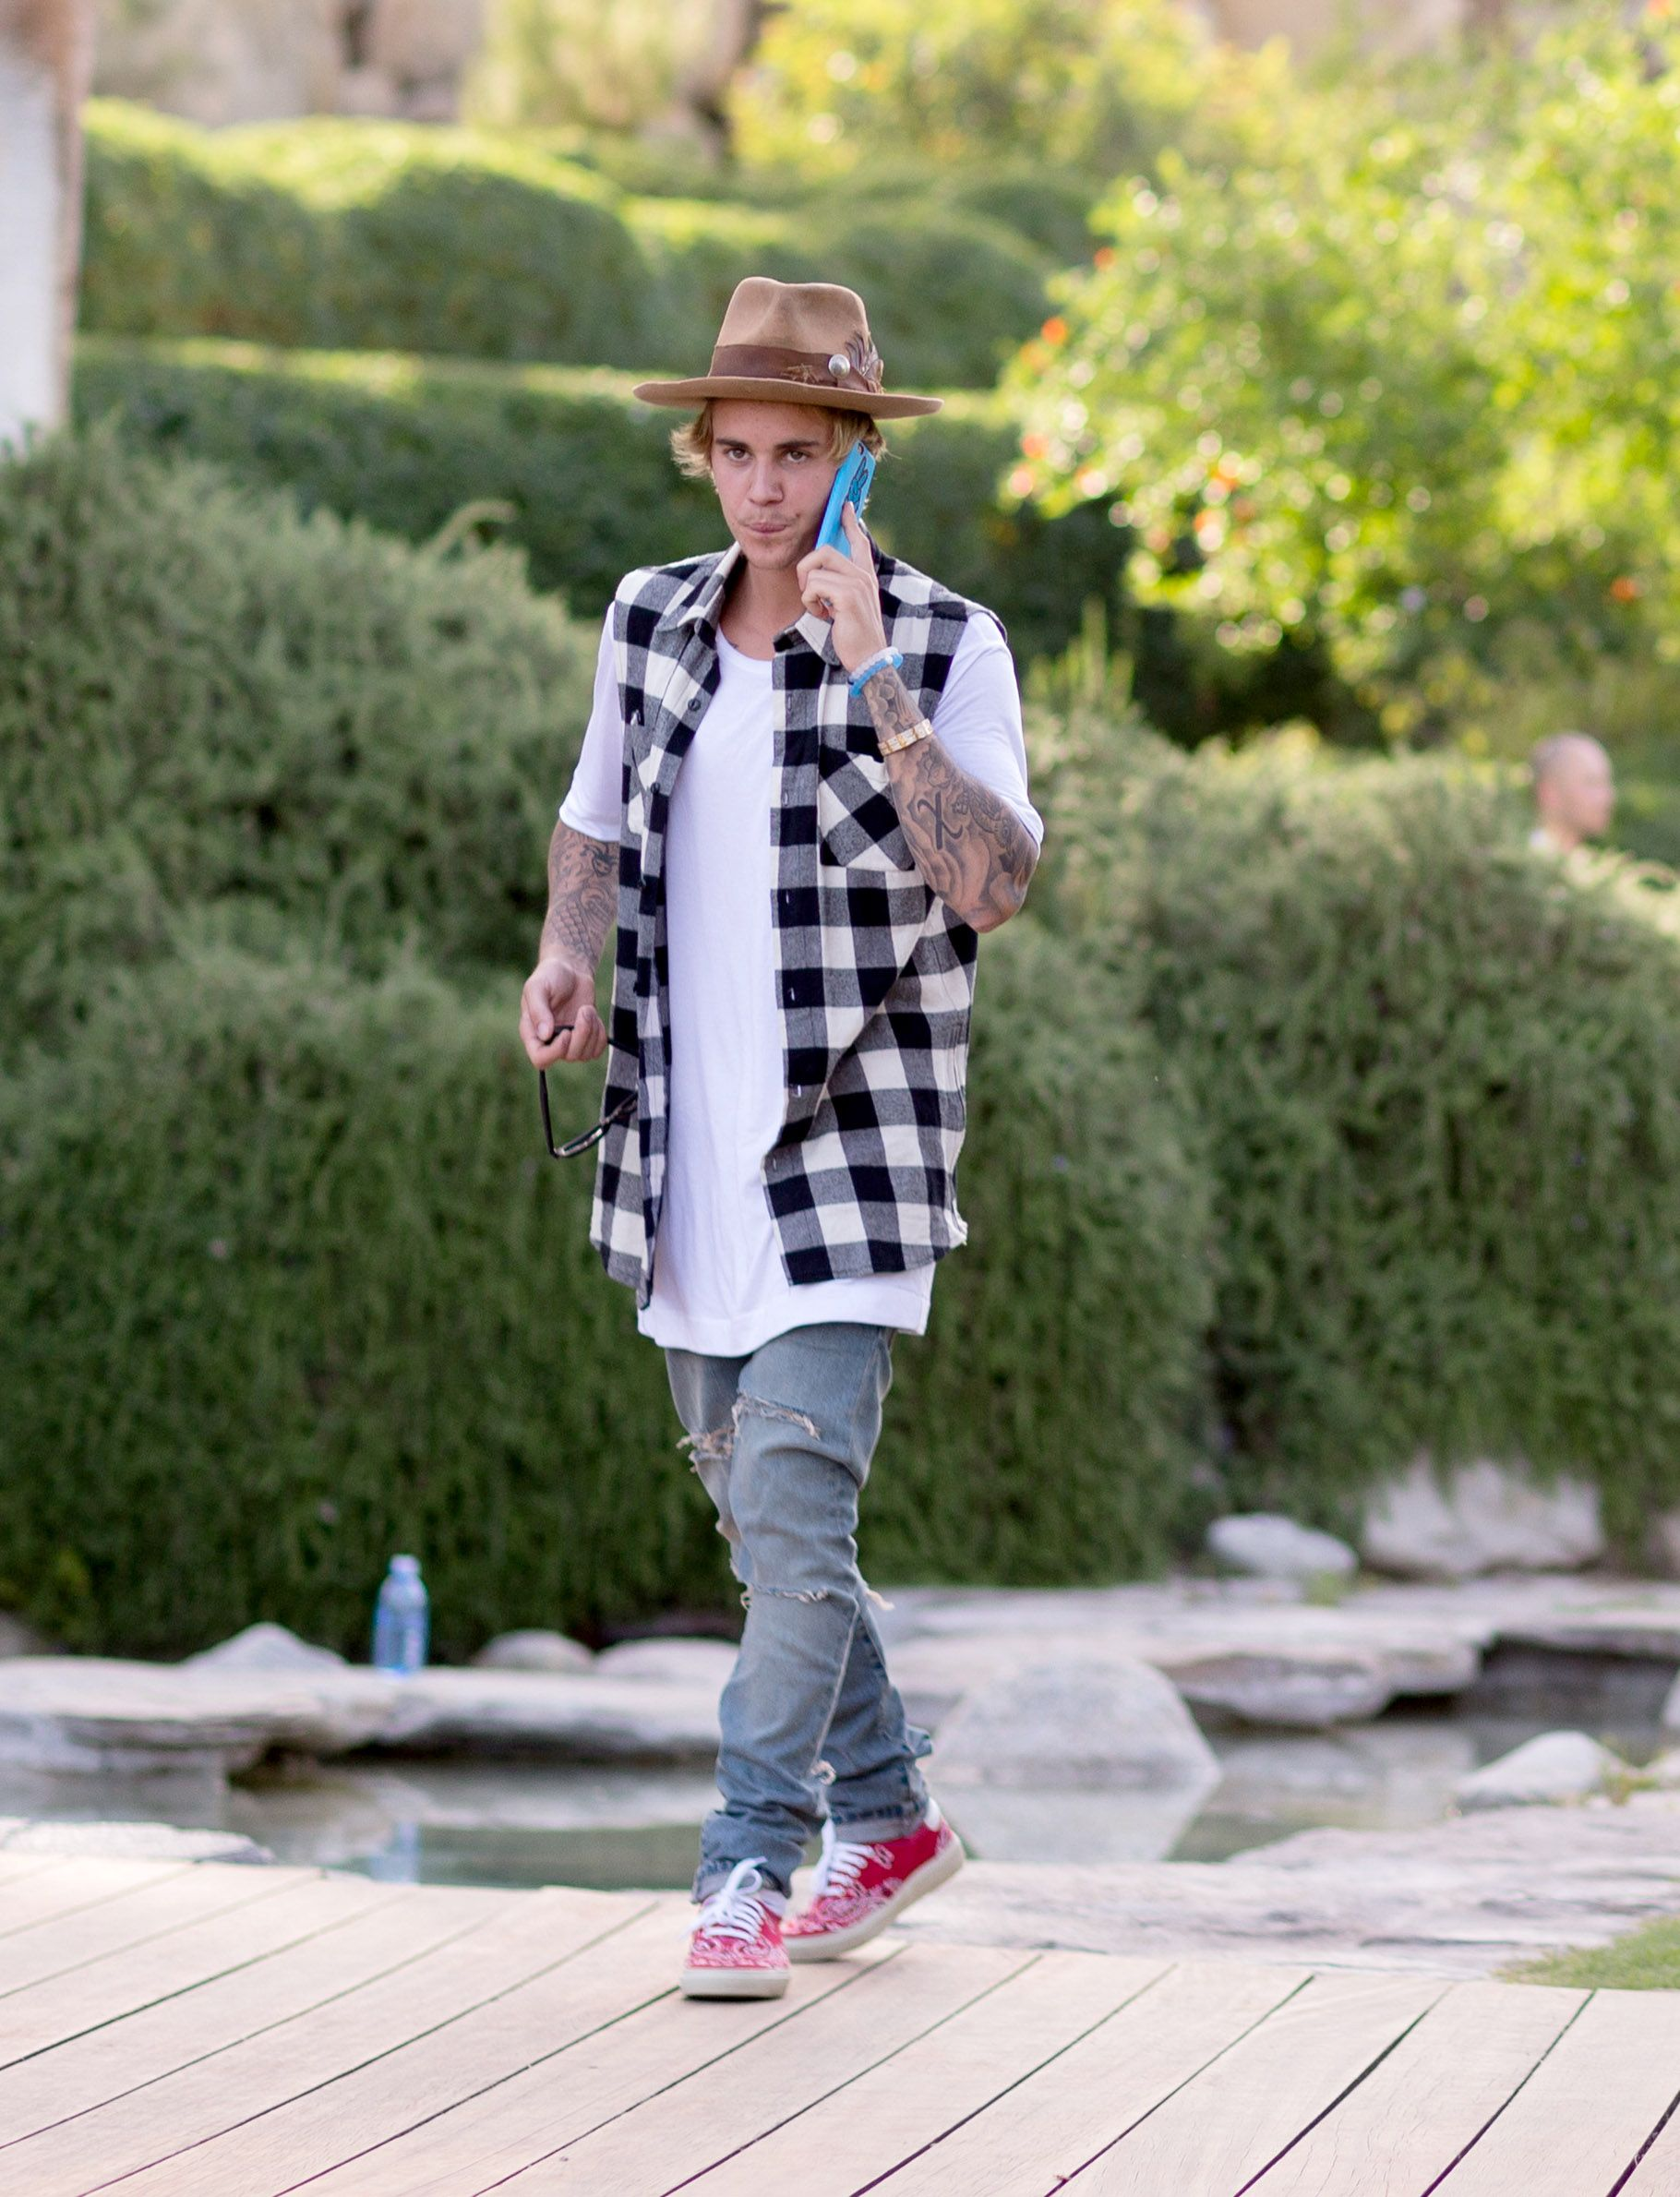 Is Justin Bieber dating iemand anders